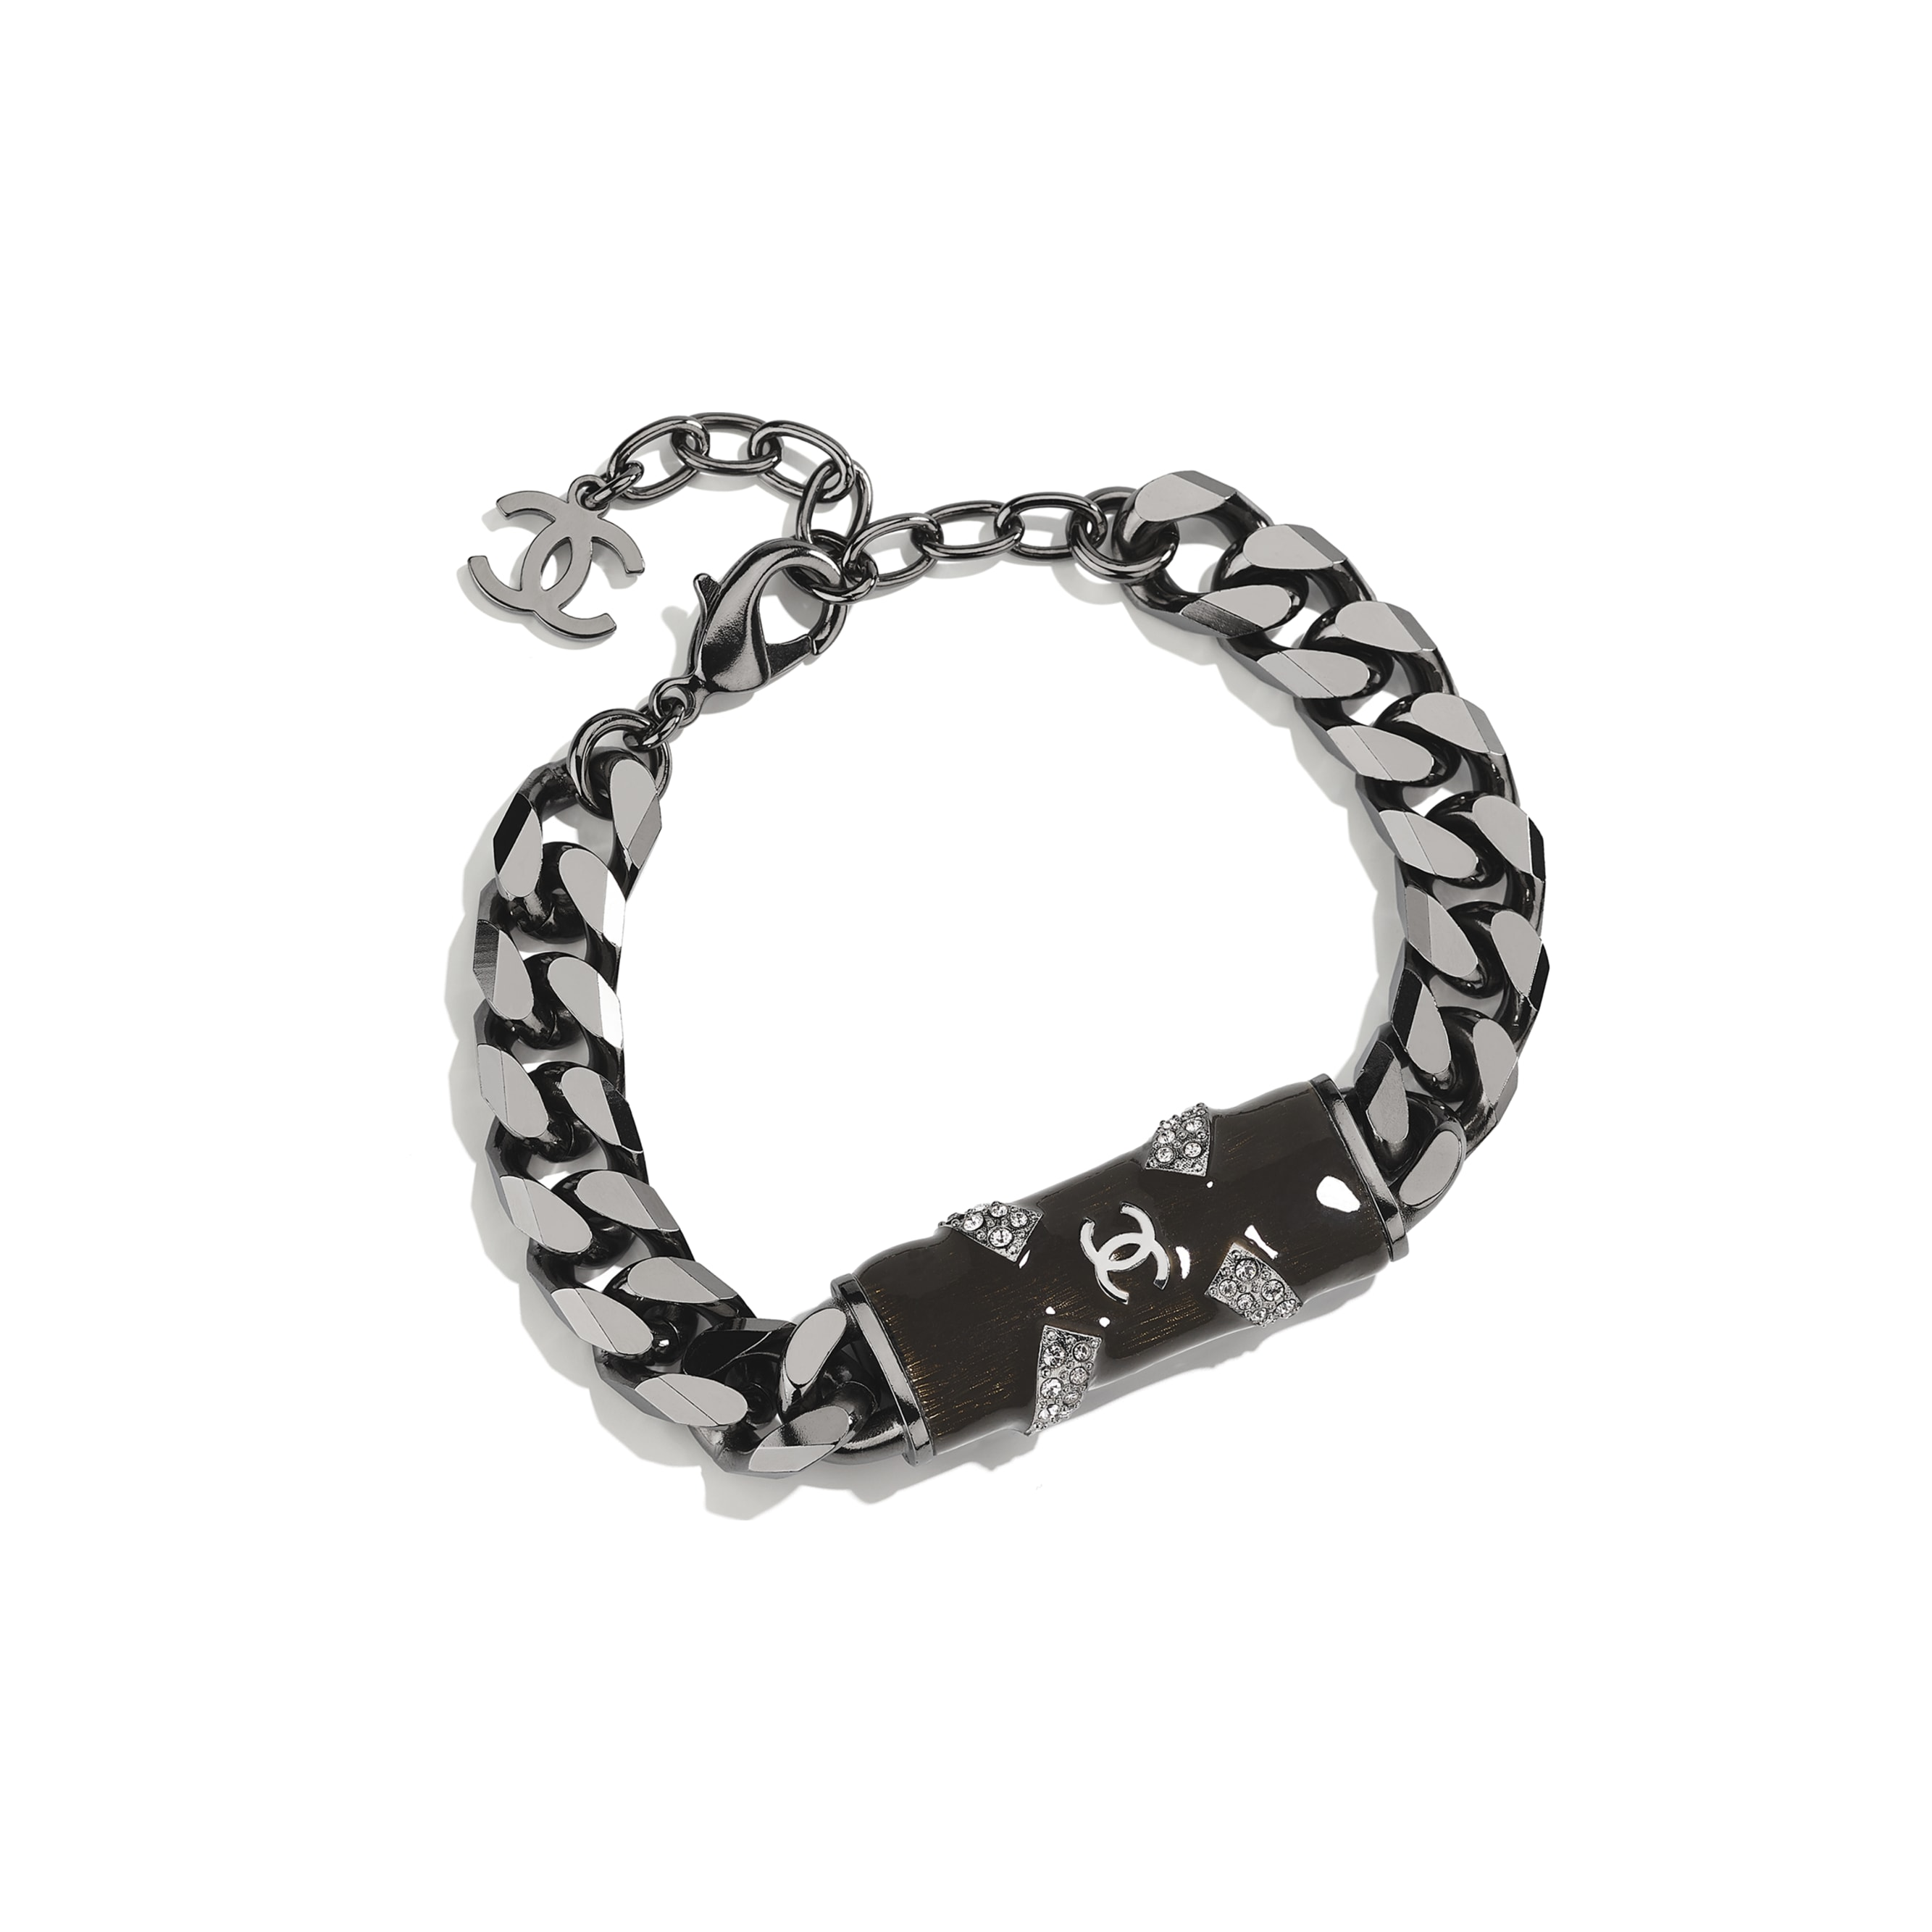 Bracelet - Ruthenium, Black & Crystal - Metal & Diamantés - CHANEL - Default view - see standard sized version